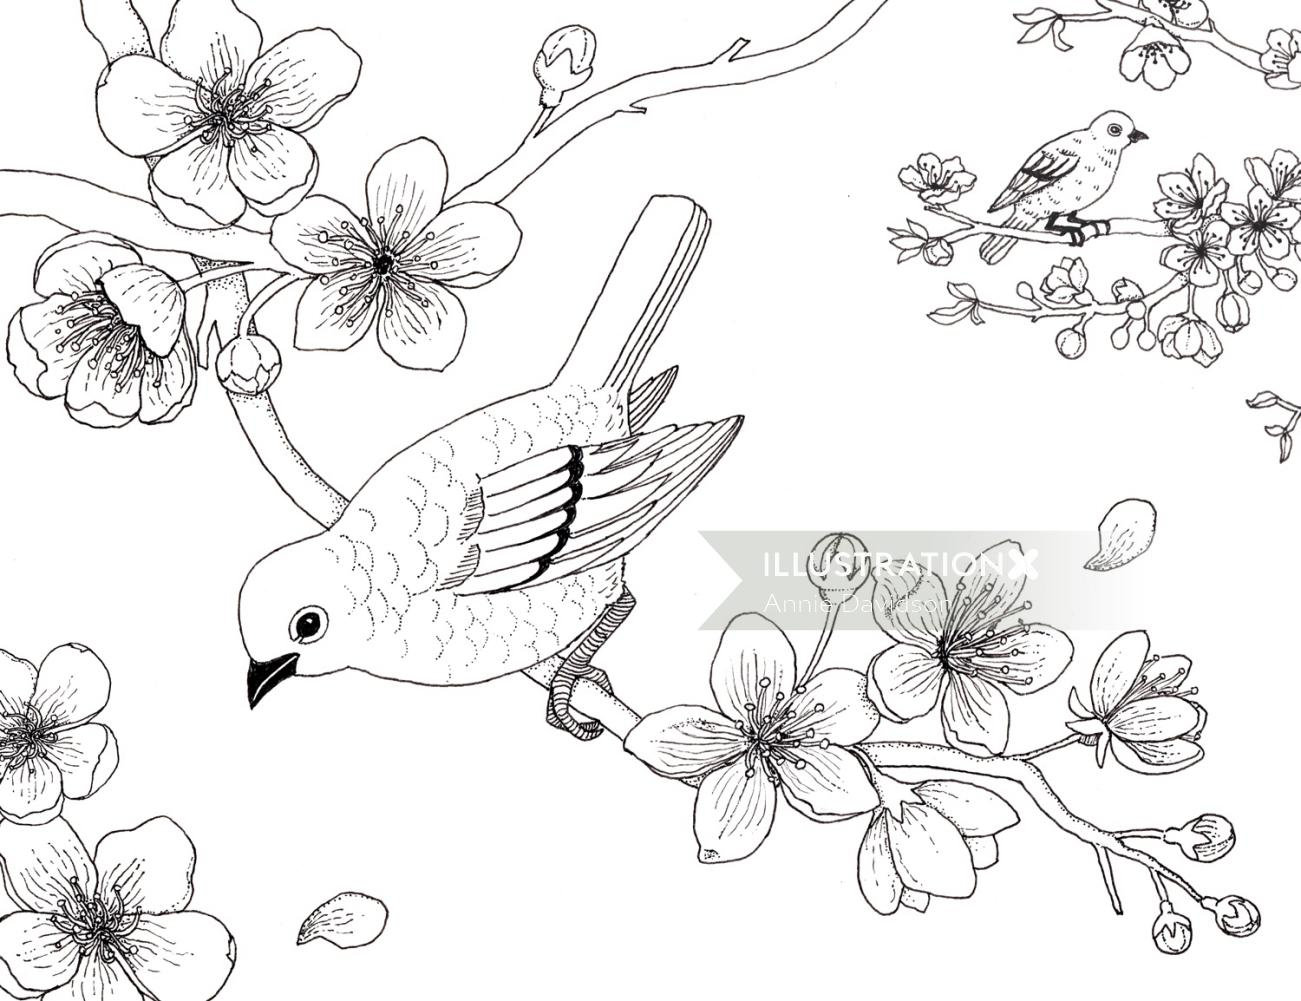 Black & white line illustration blossom colouring book